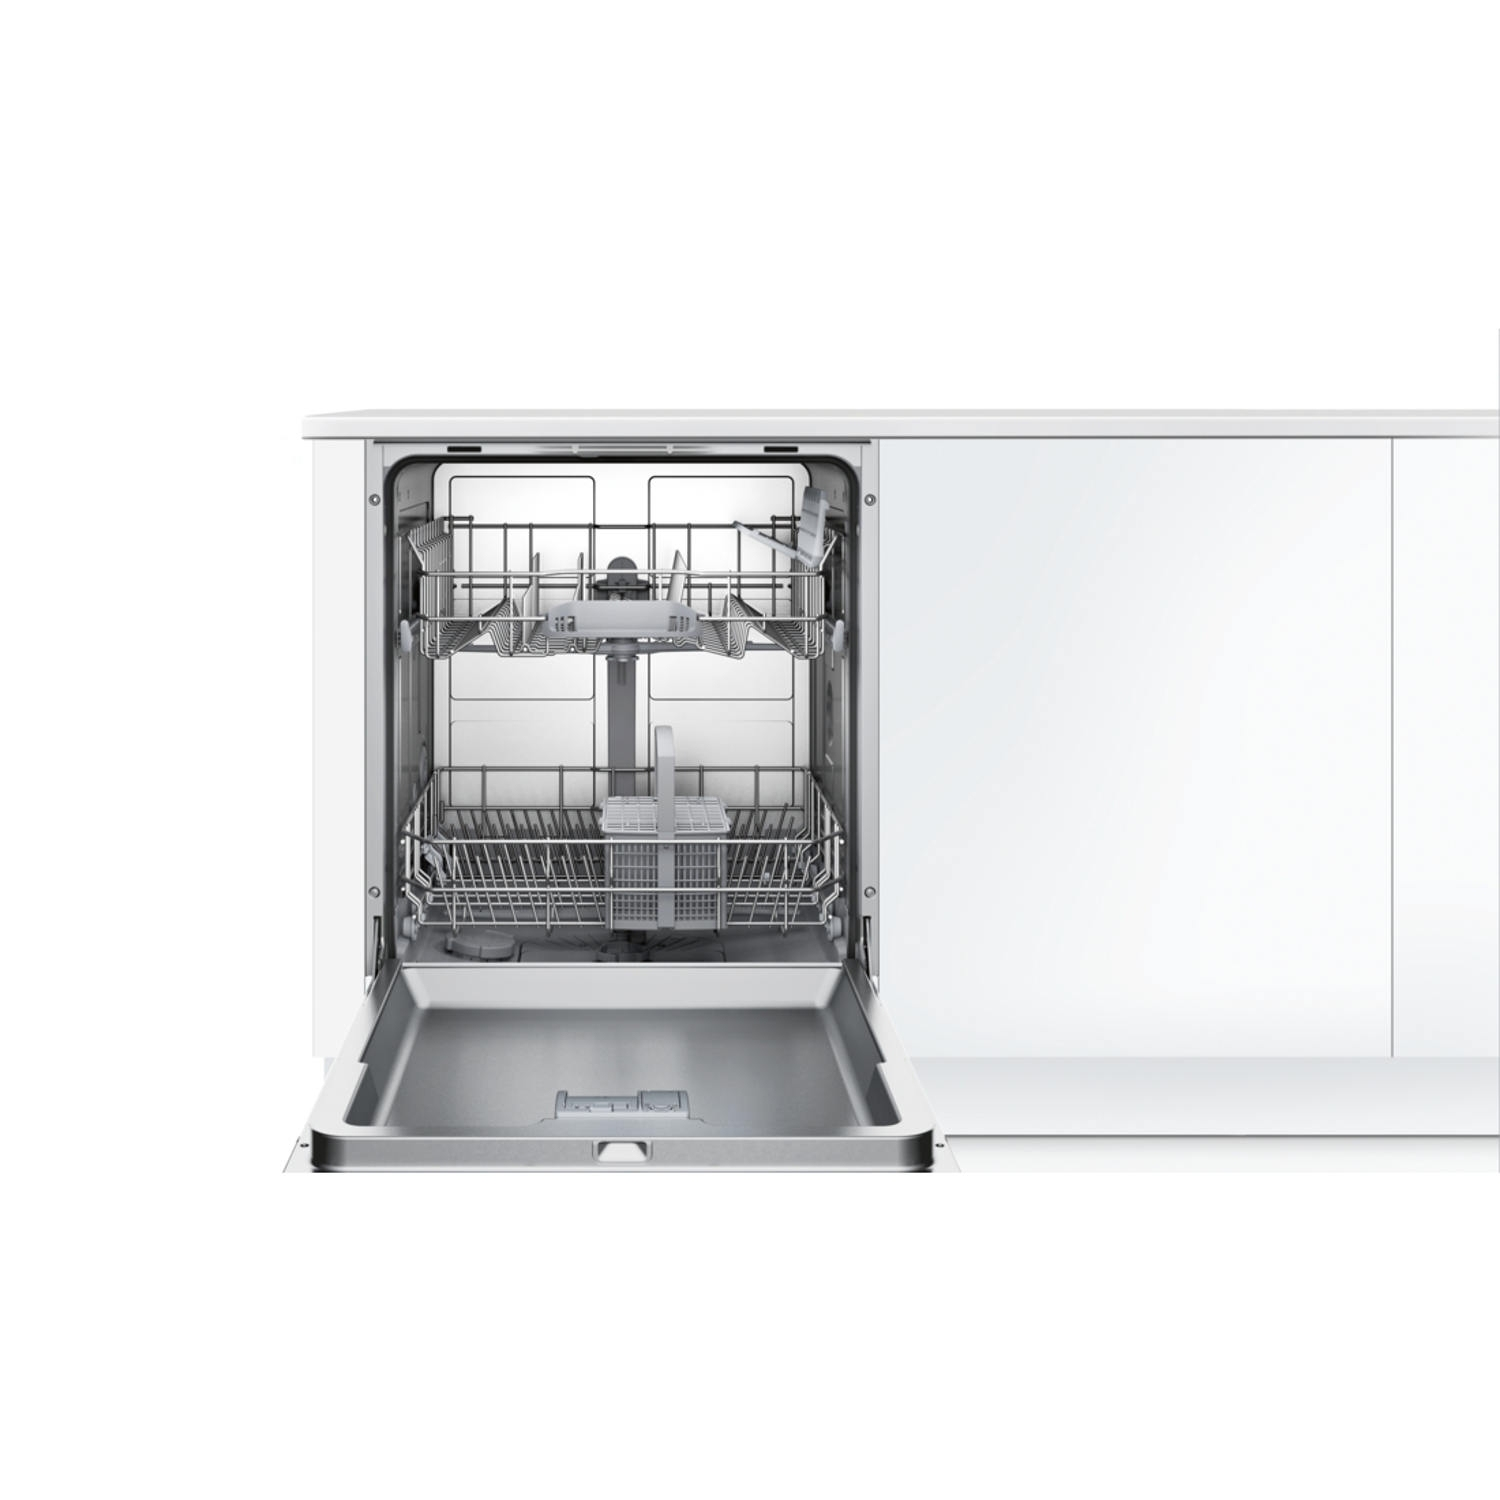 Bosch Integrated Full Size Dishwasher - Black Control Panel - A+ Rated - 4